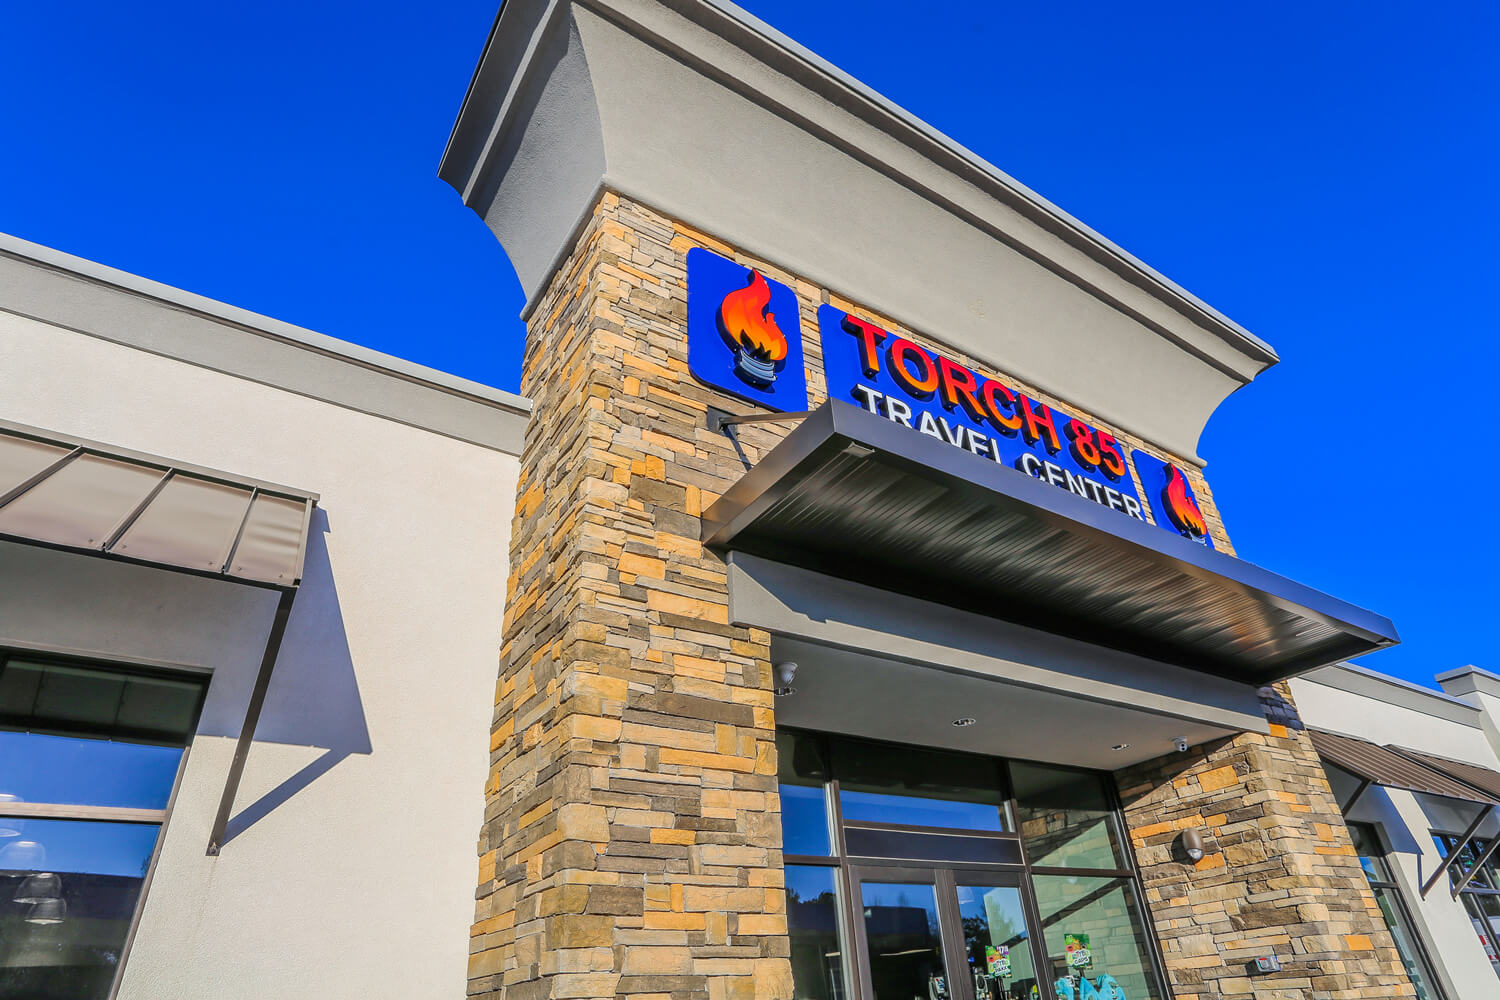 Torch 85 - Entrance Awning - Designed by Foshee Architecture